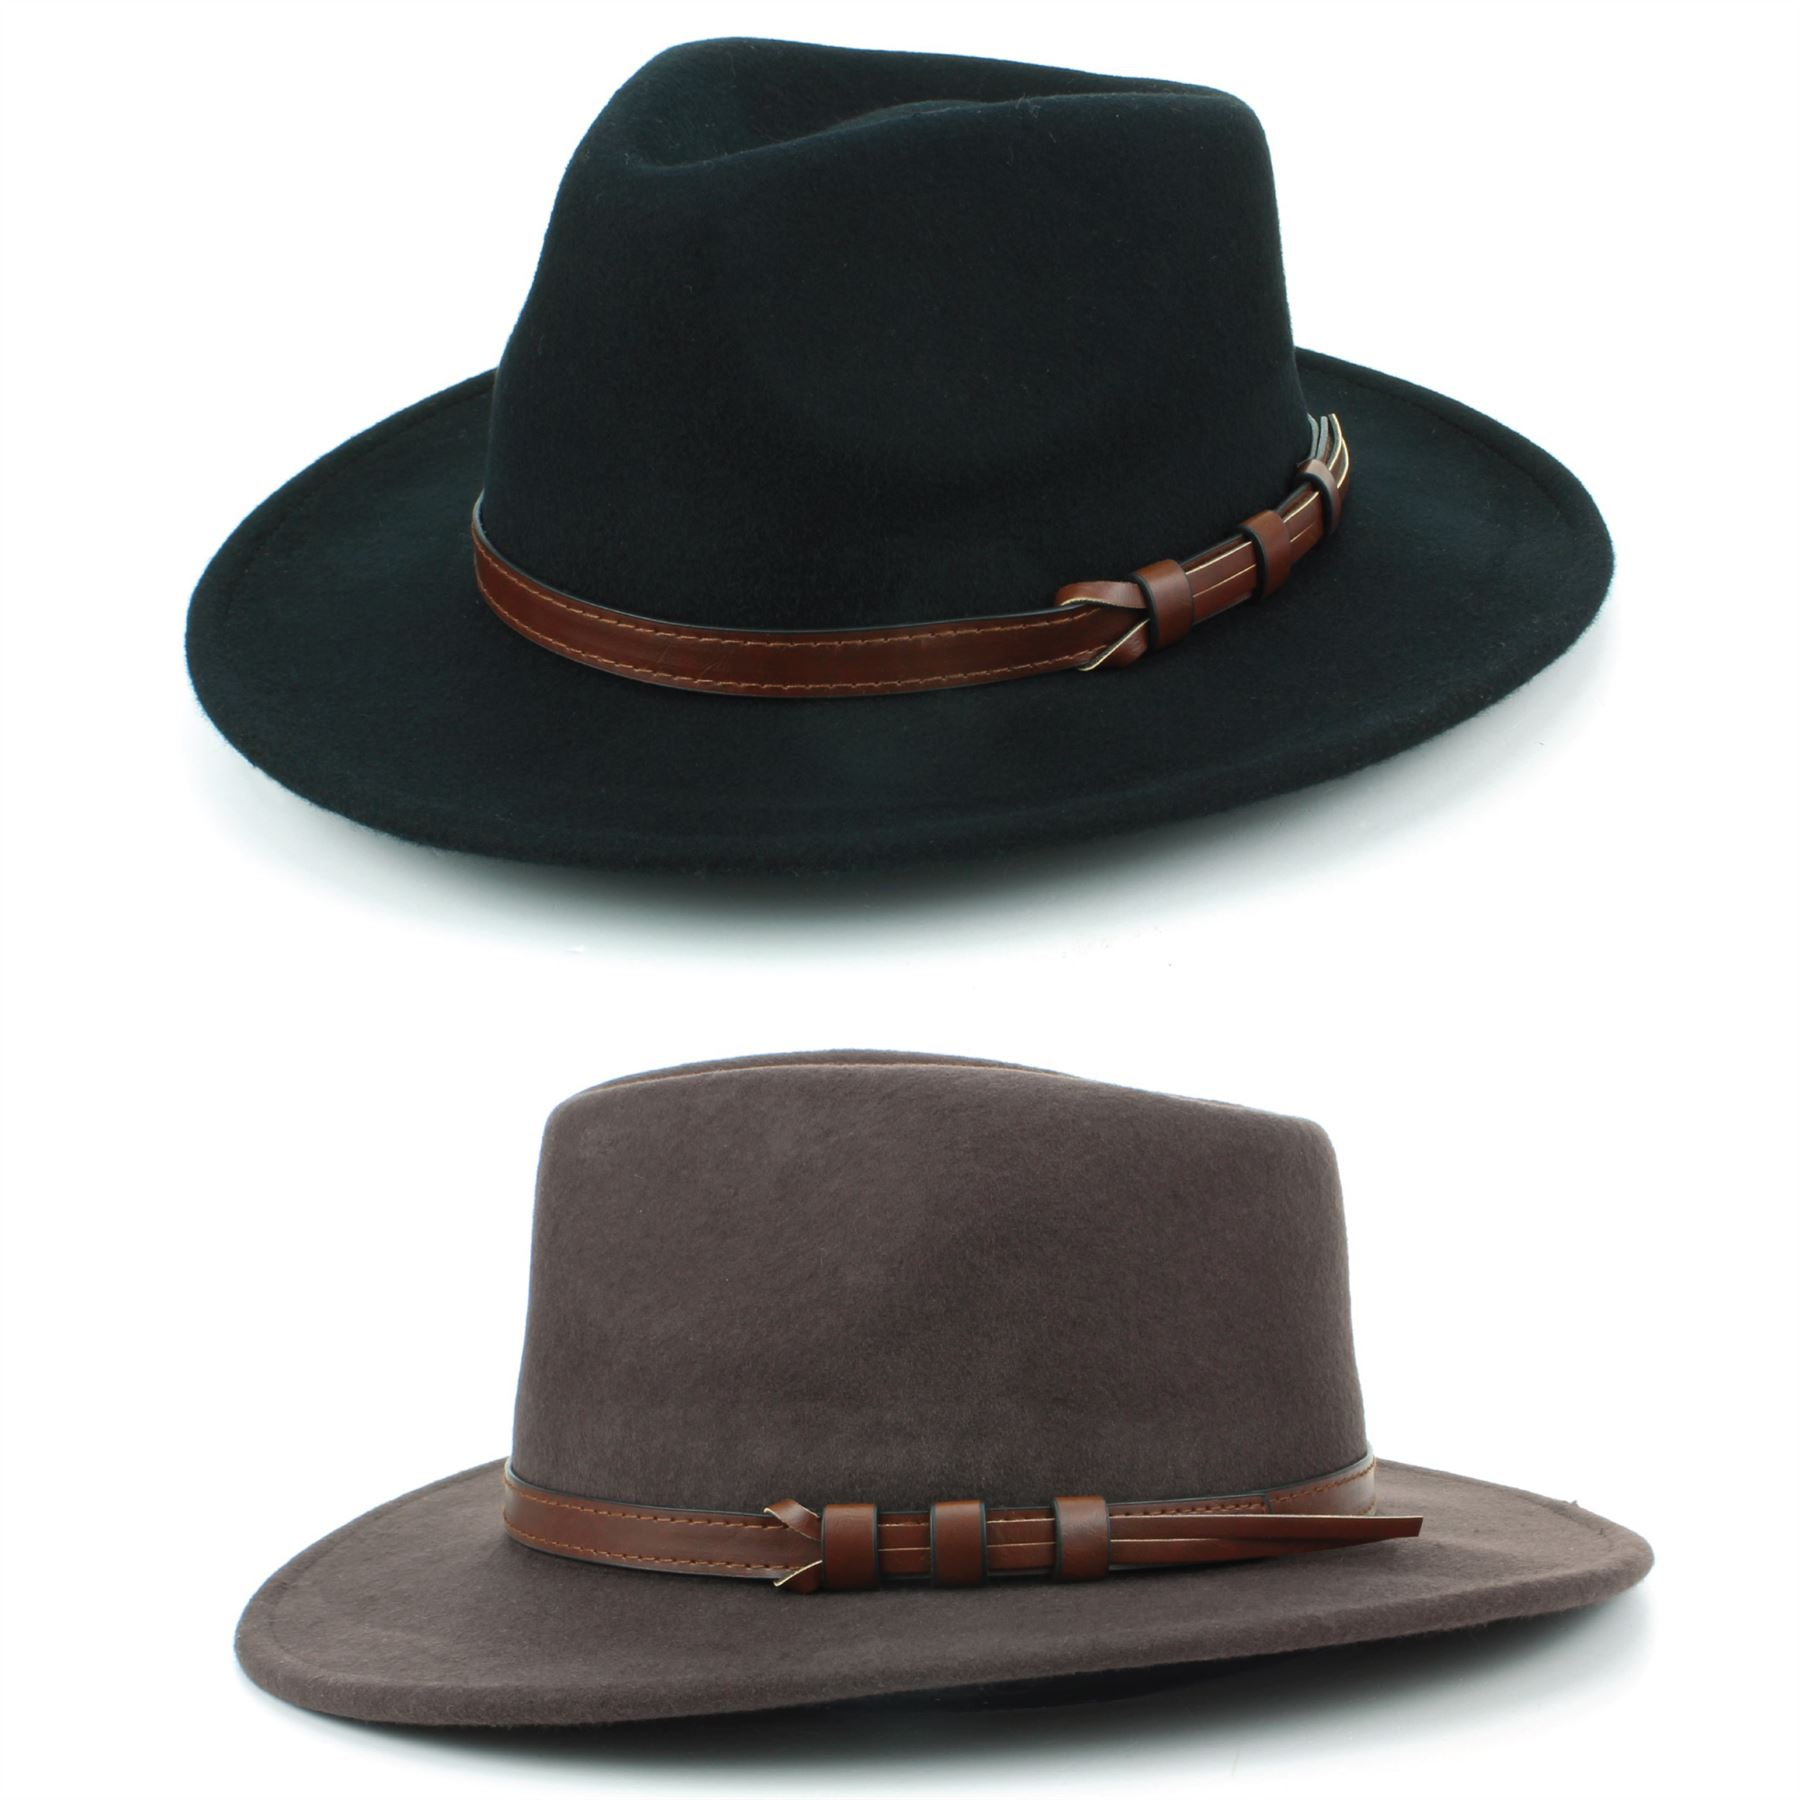 aa5f2d07 Wool fedora bush hat with a pinched crown, a wide flat brim and a faux  leather band.